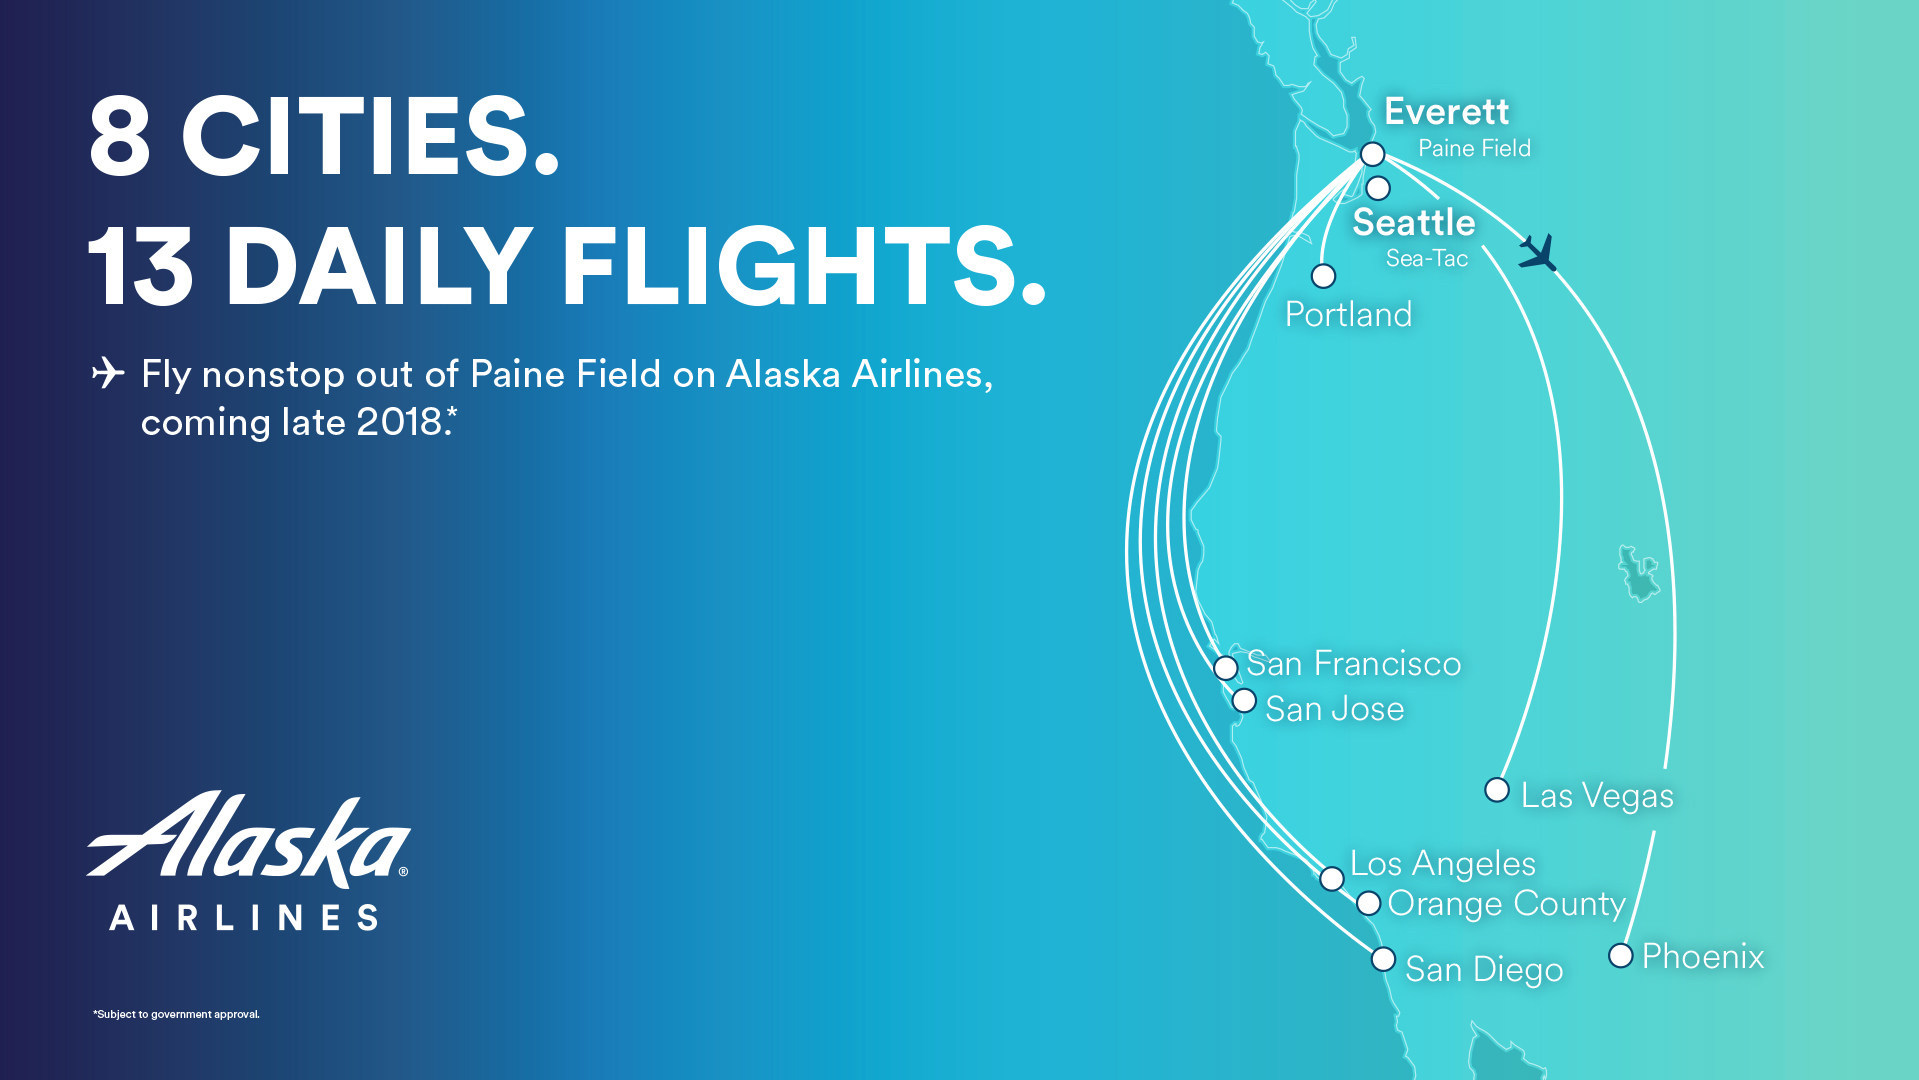 Alaska Airlines promises 13 flights a day out of Paine Field